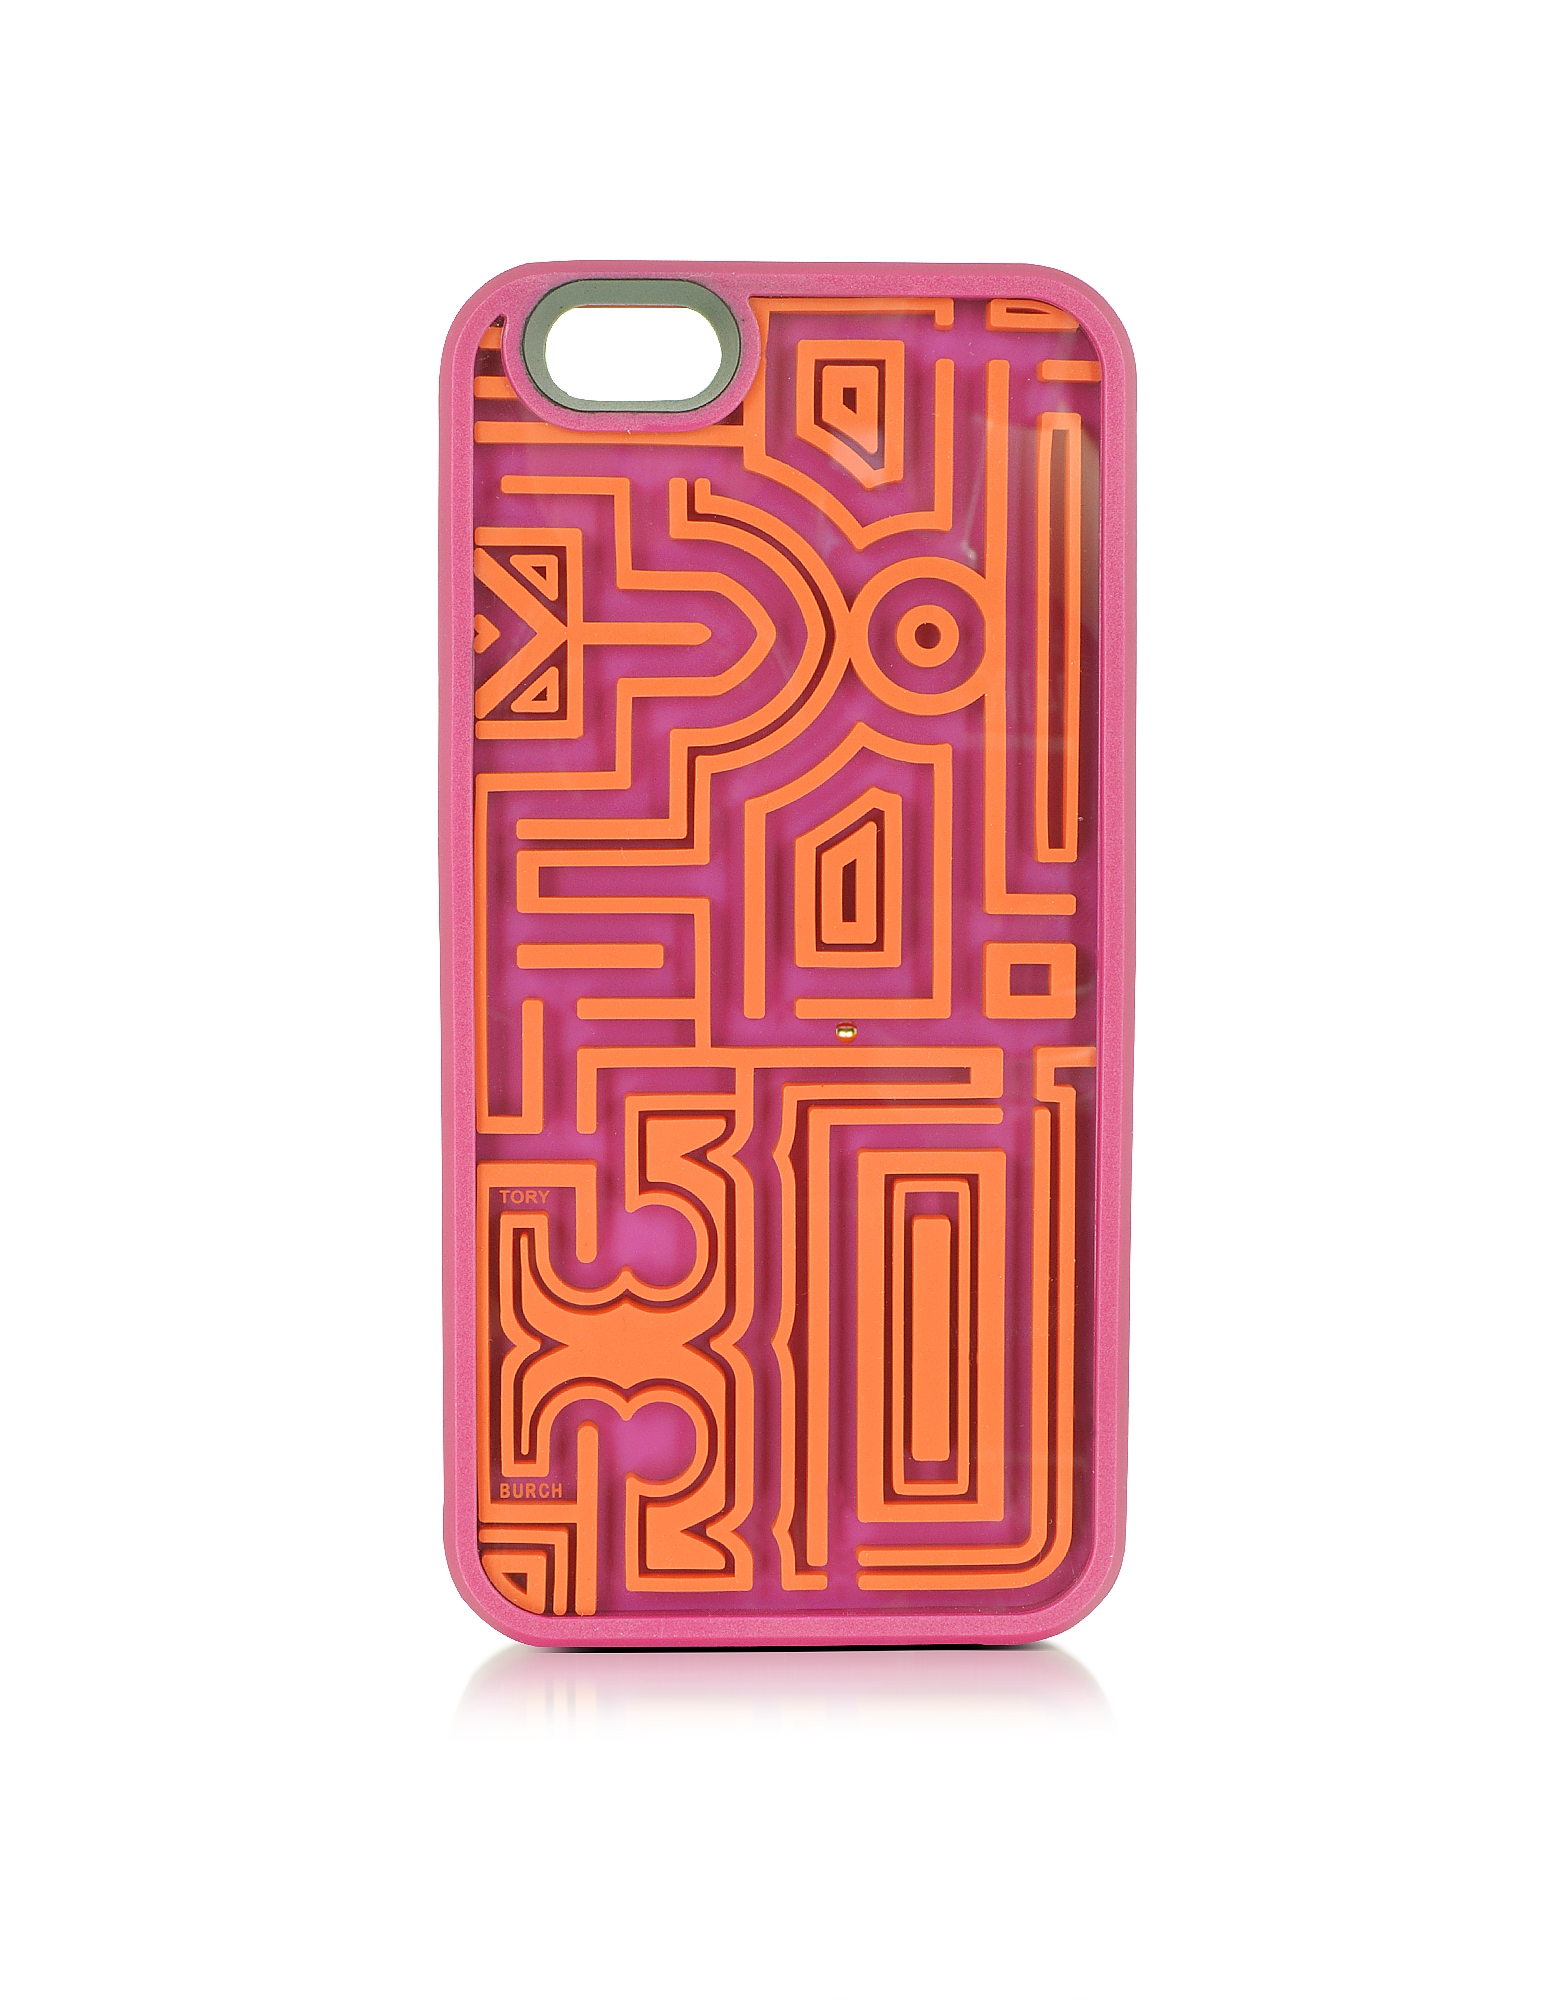 Gallery Game - Housse de Protection pour iPhone 6 en Silicone